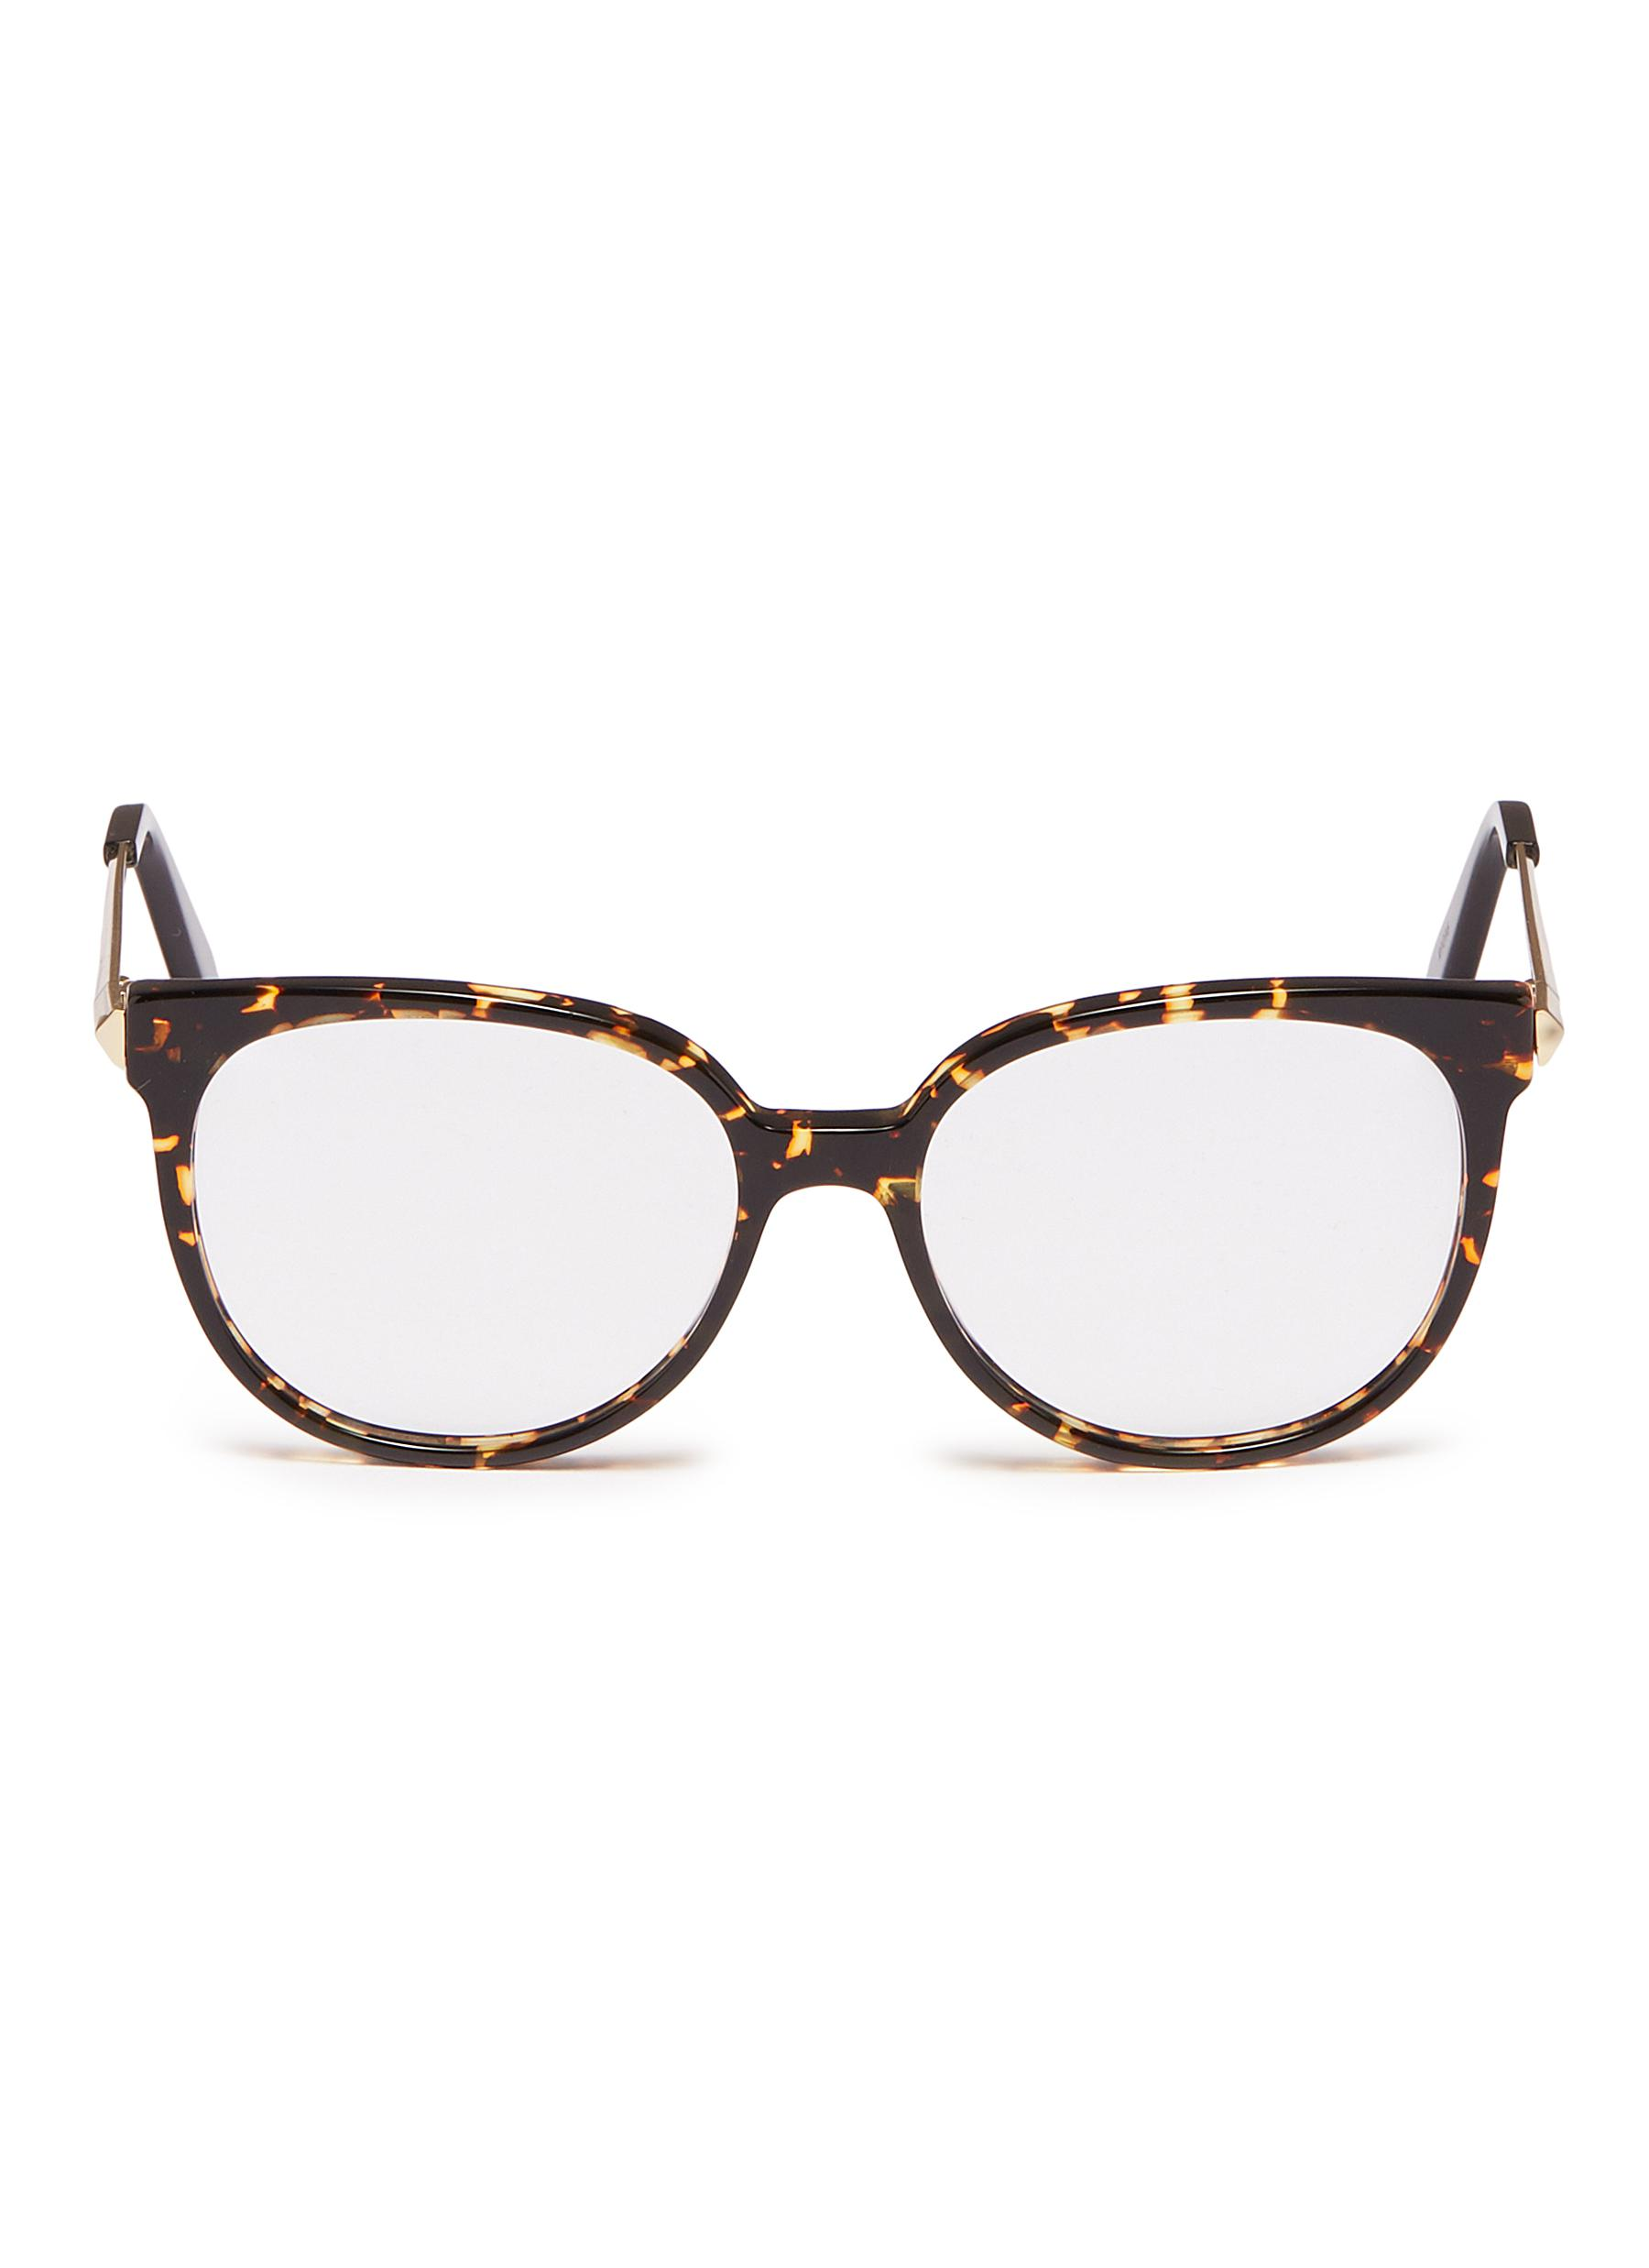 848402fe059d Main View - Click To Enlarge - Victoria Beckham - Metal temple acetate  round optical glasses